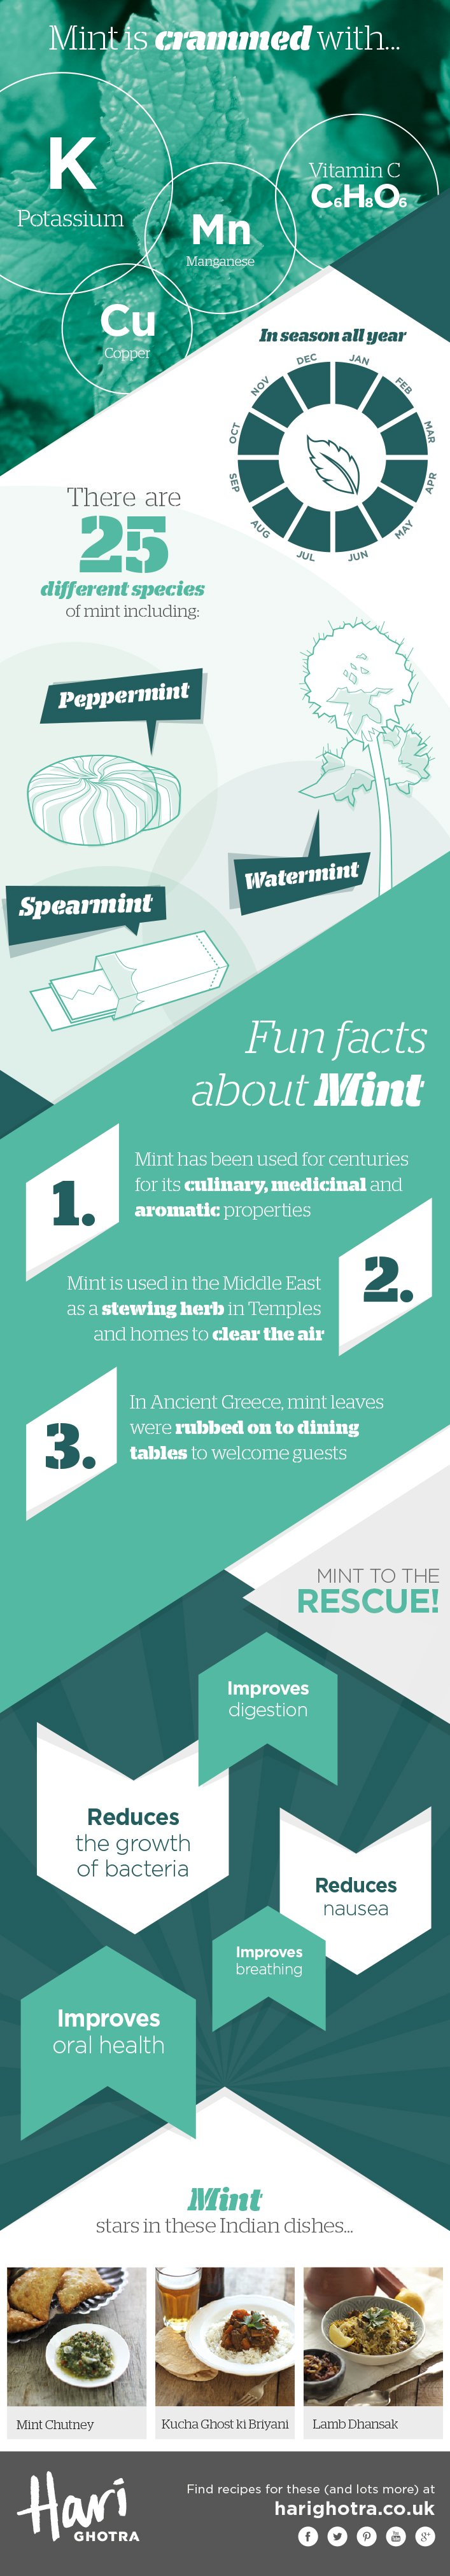 Chef Hari Ghotra's Key Ingredients Mint Infographic